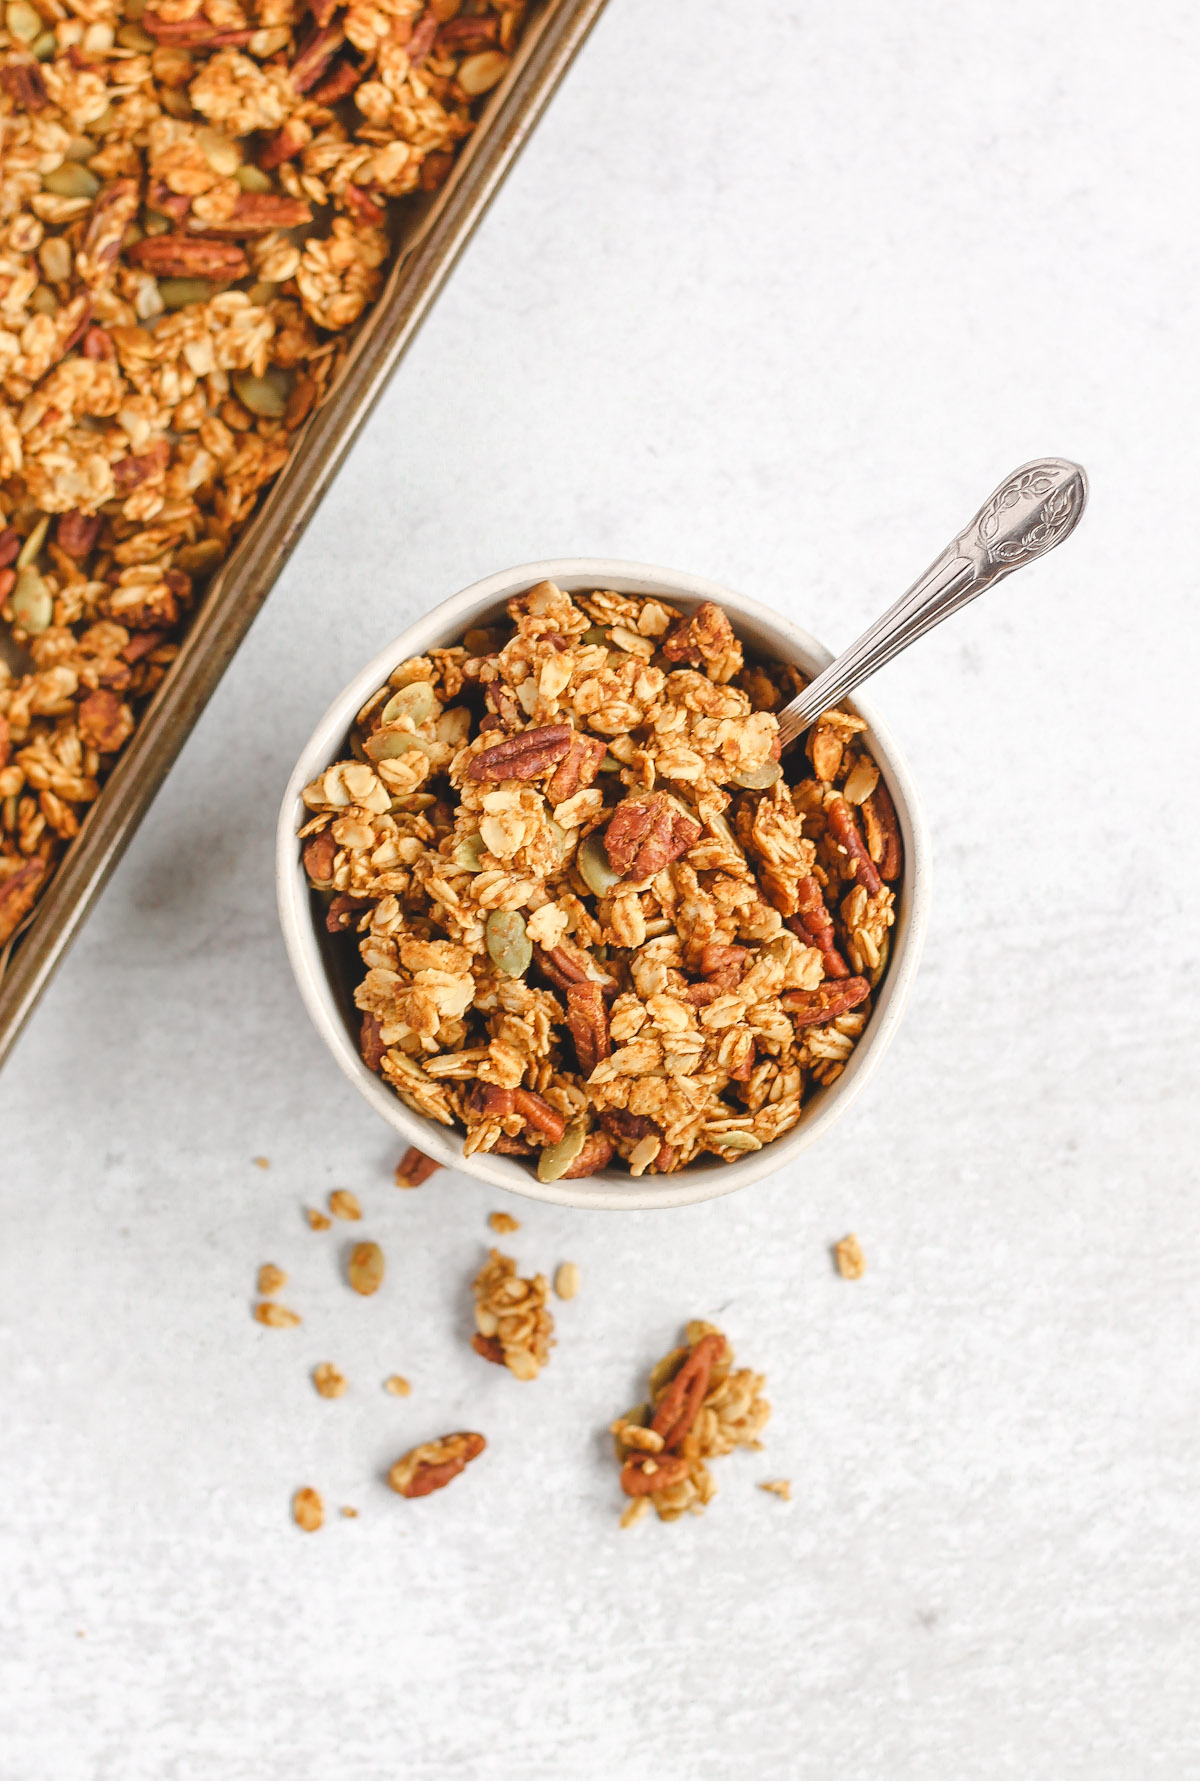 granola in a small white bowl with a silver spoon in bowl